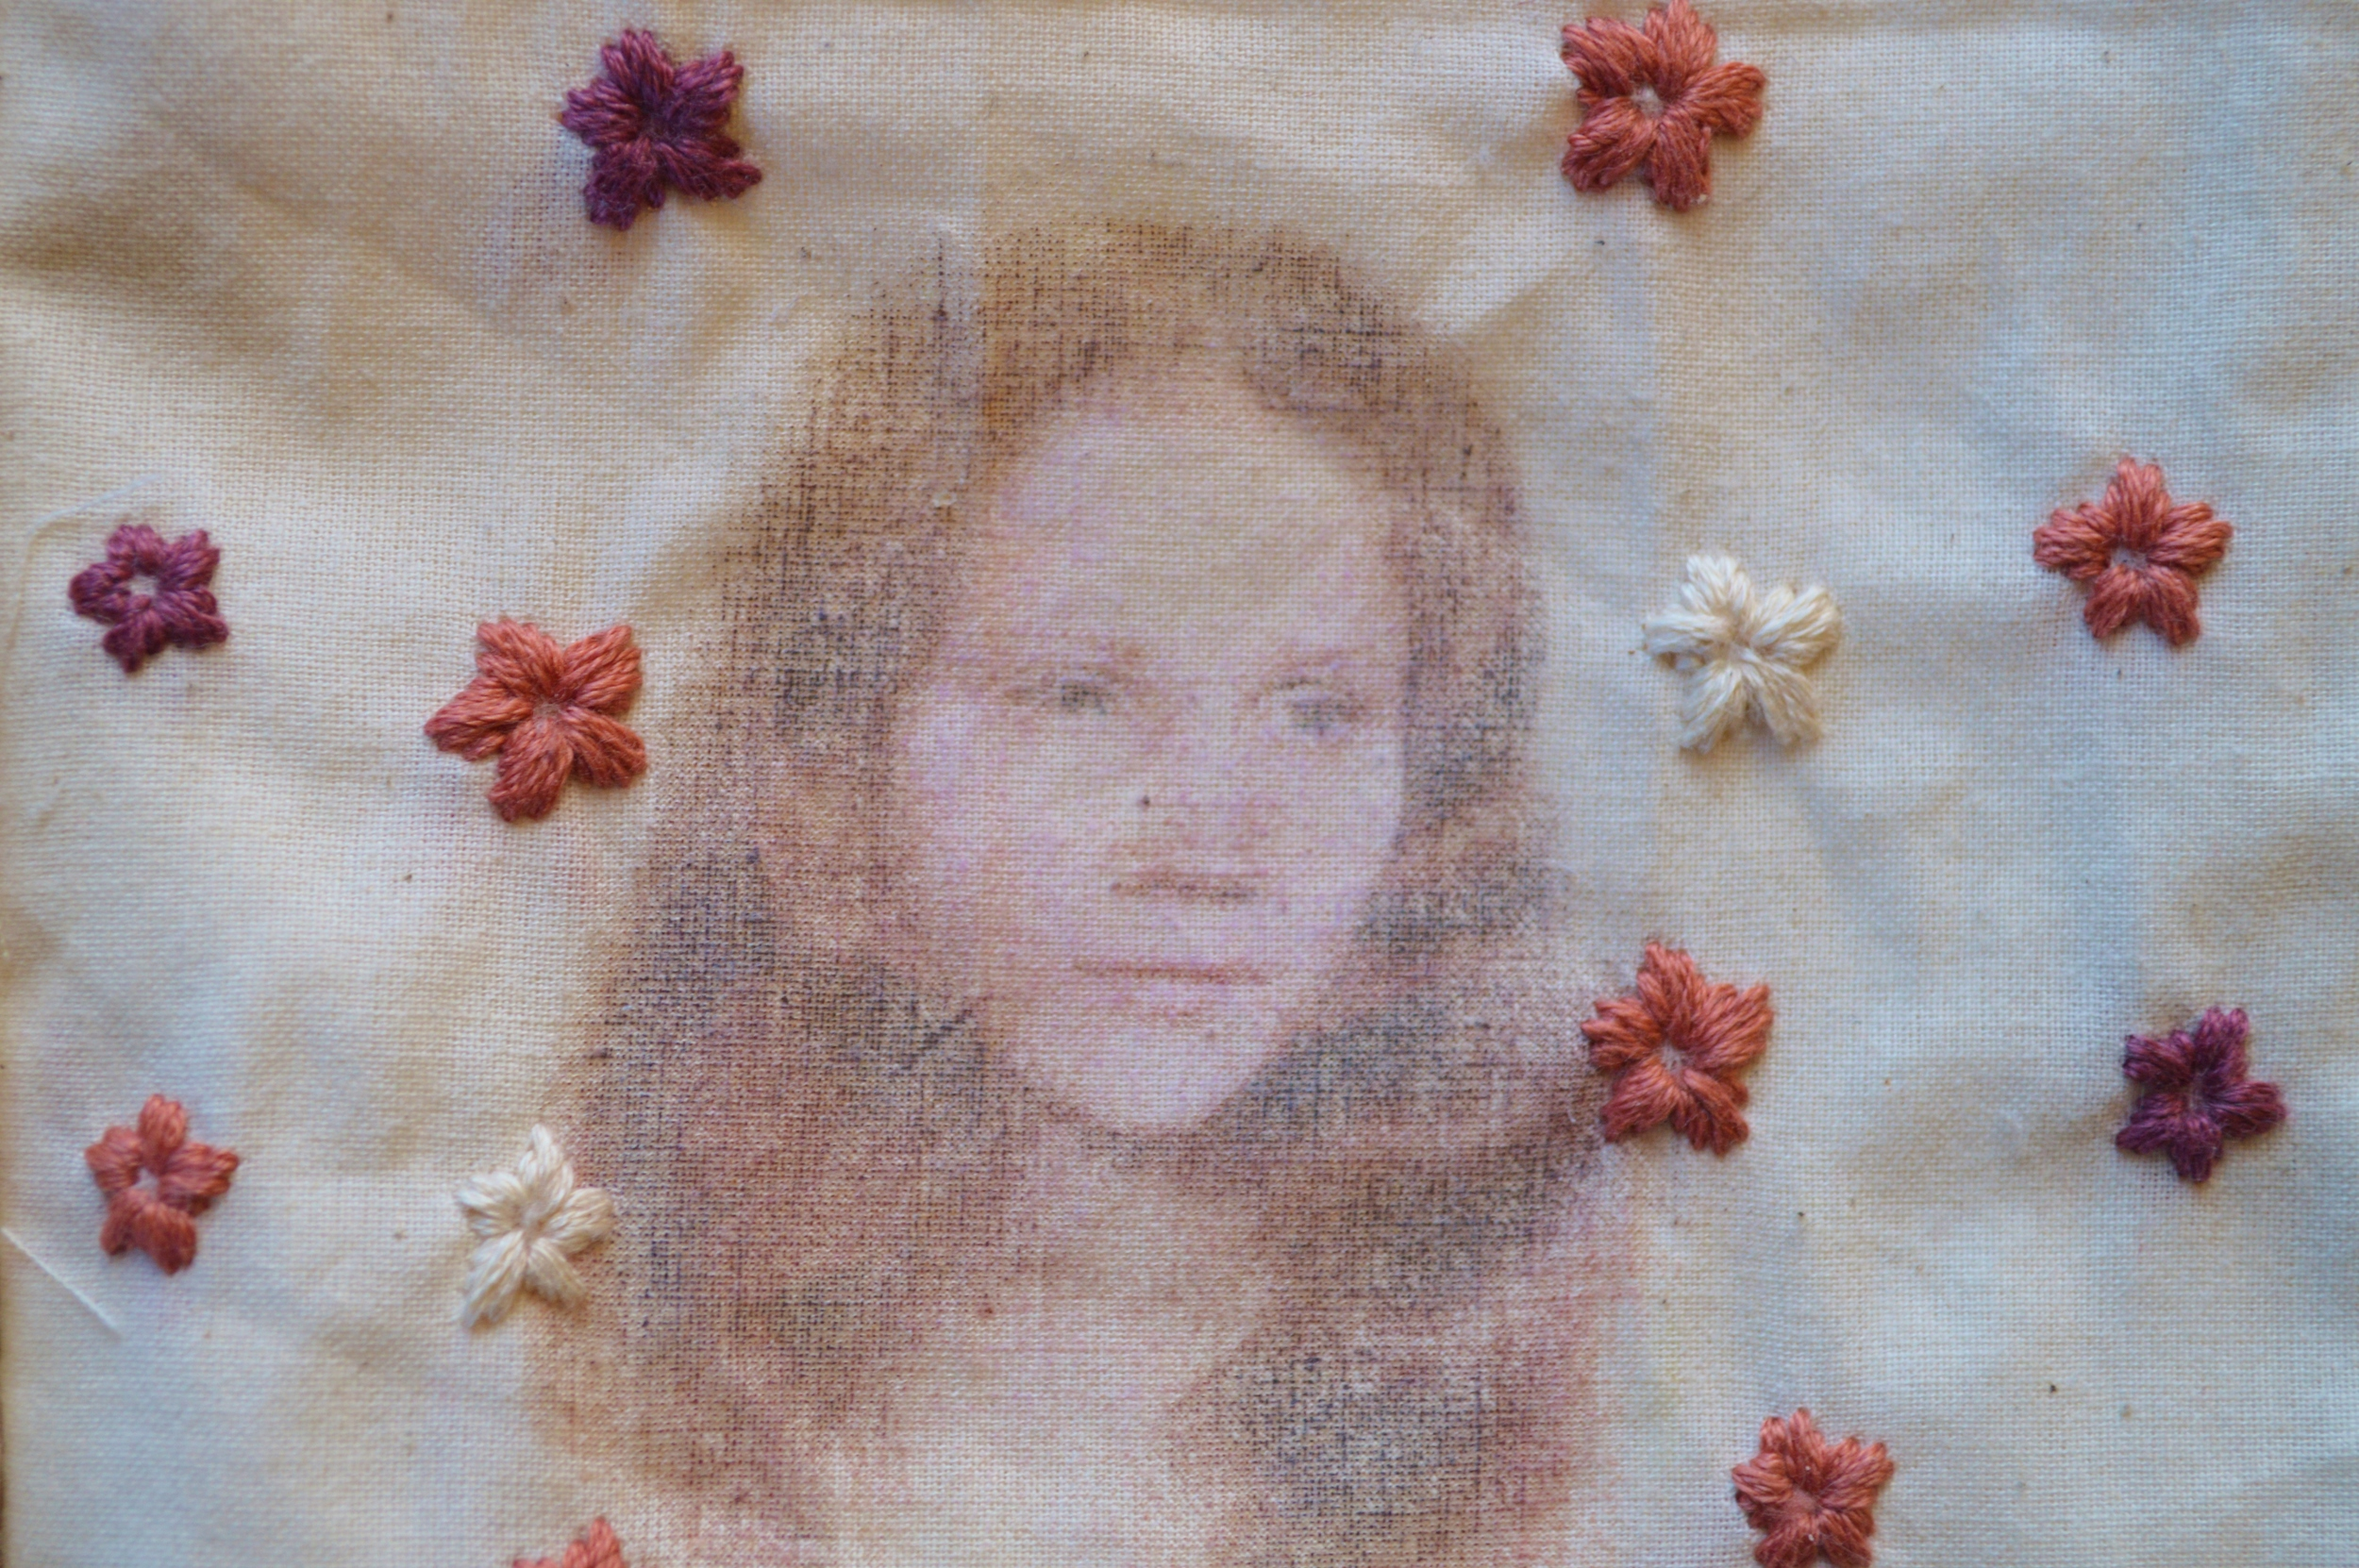 Sewing Box: Mother Mother  (detail)